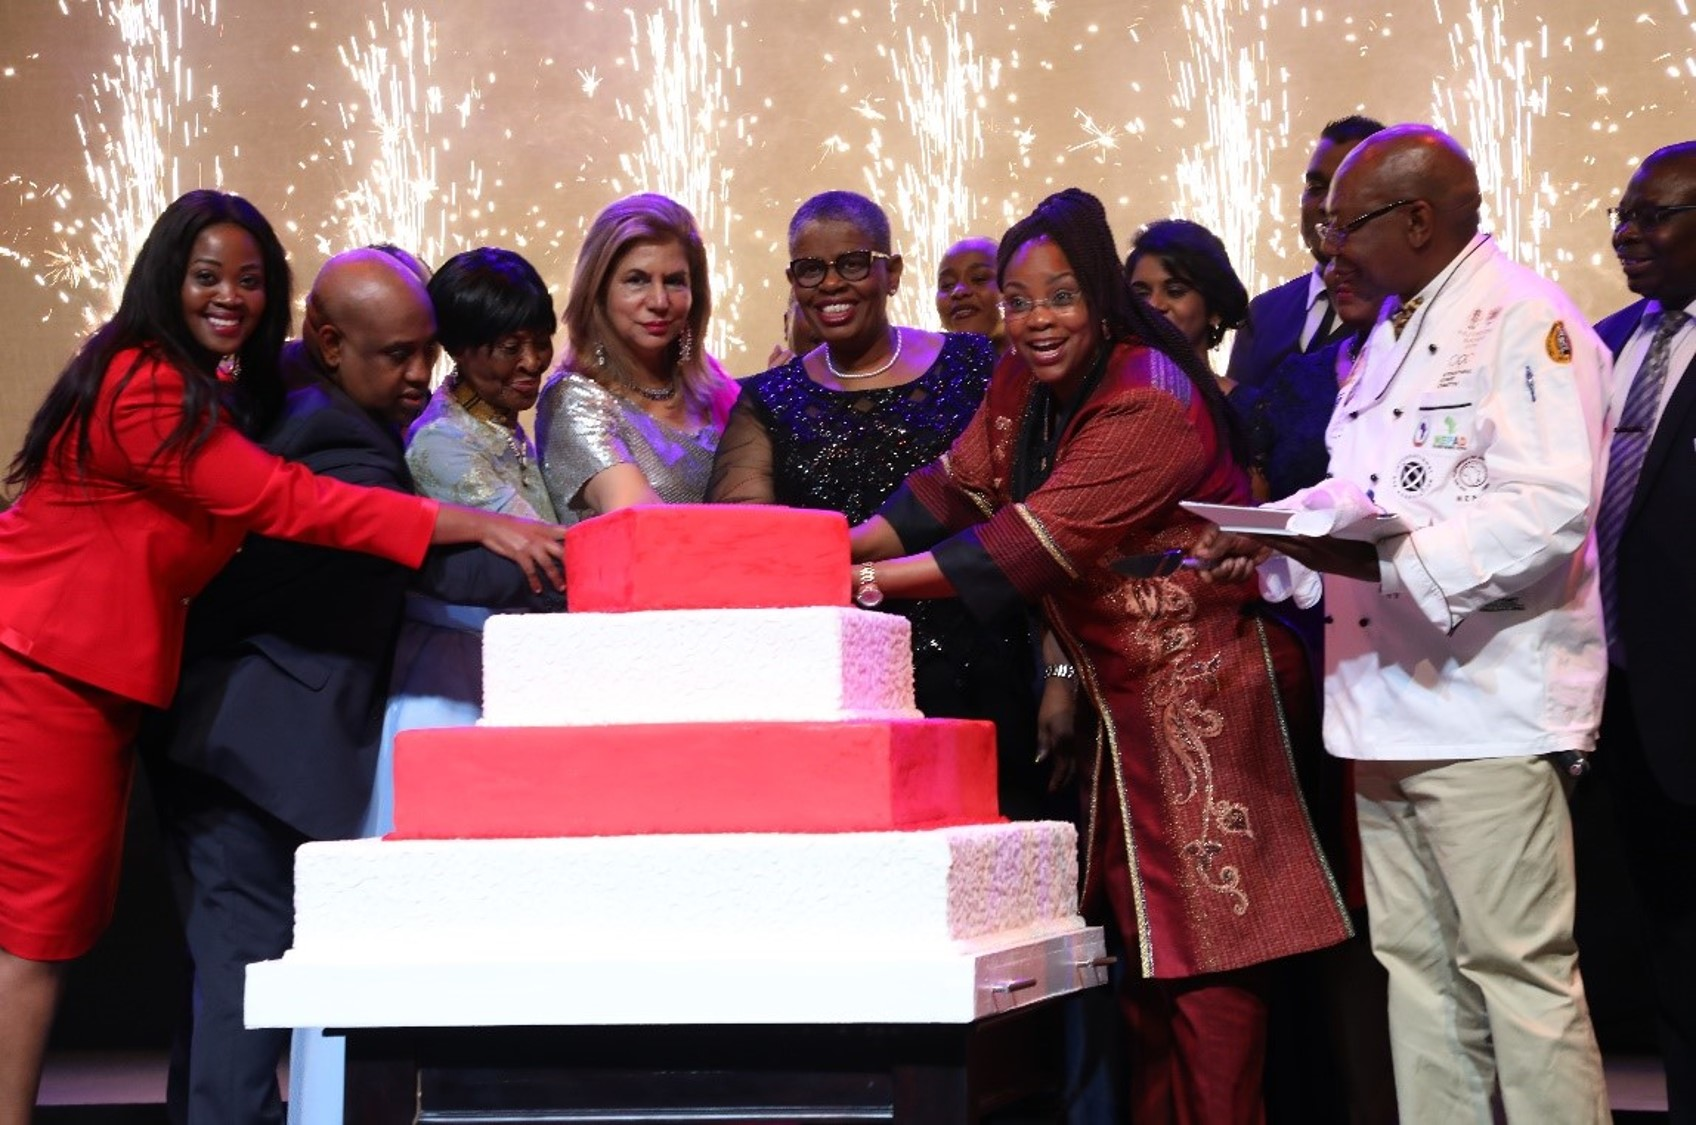 Durban ICC celebrates 21 years of changing lives